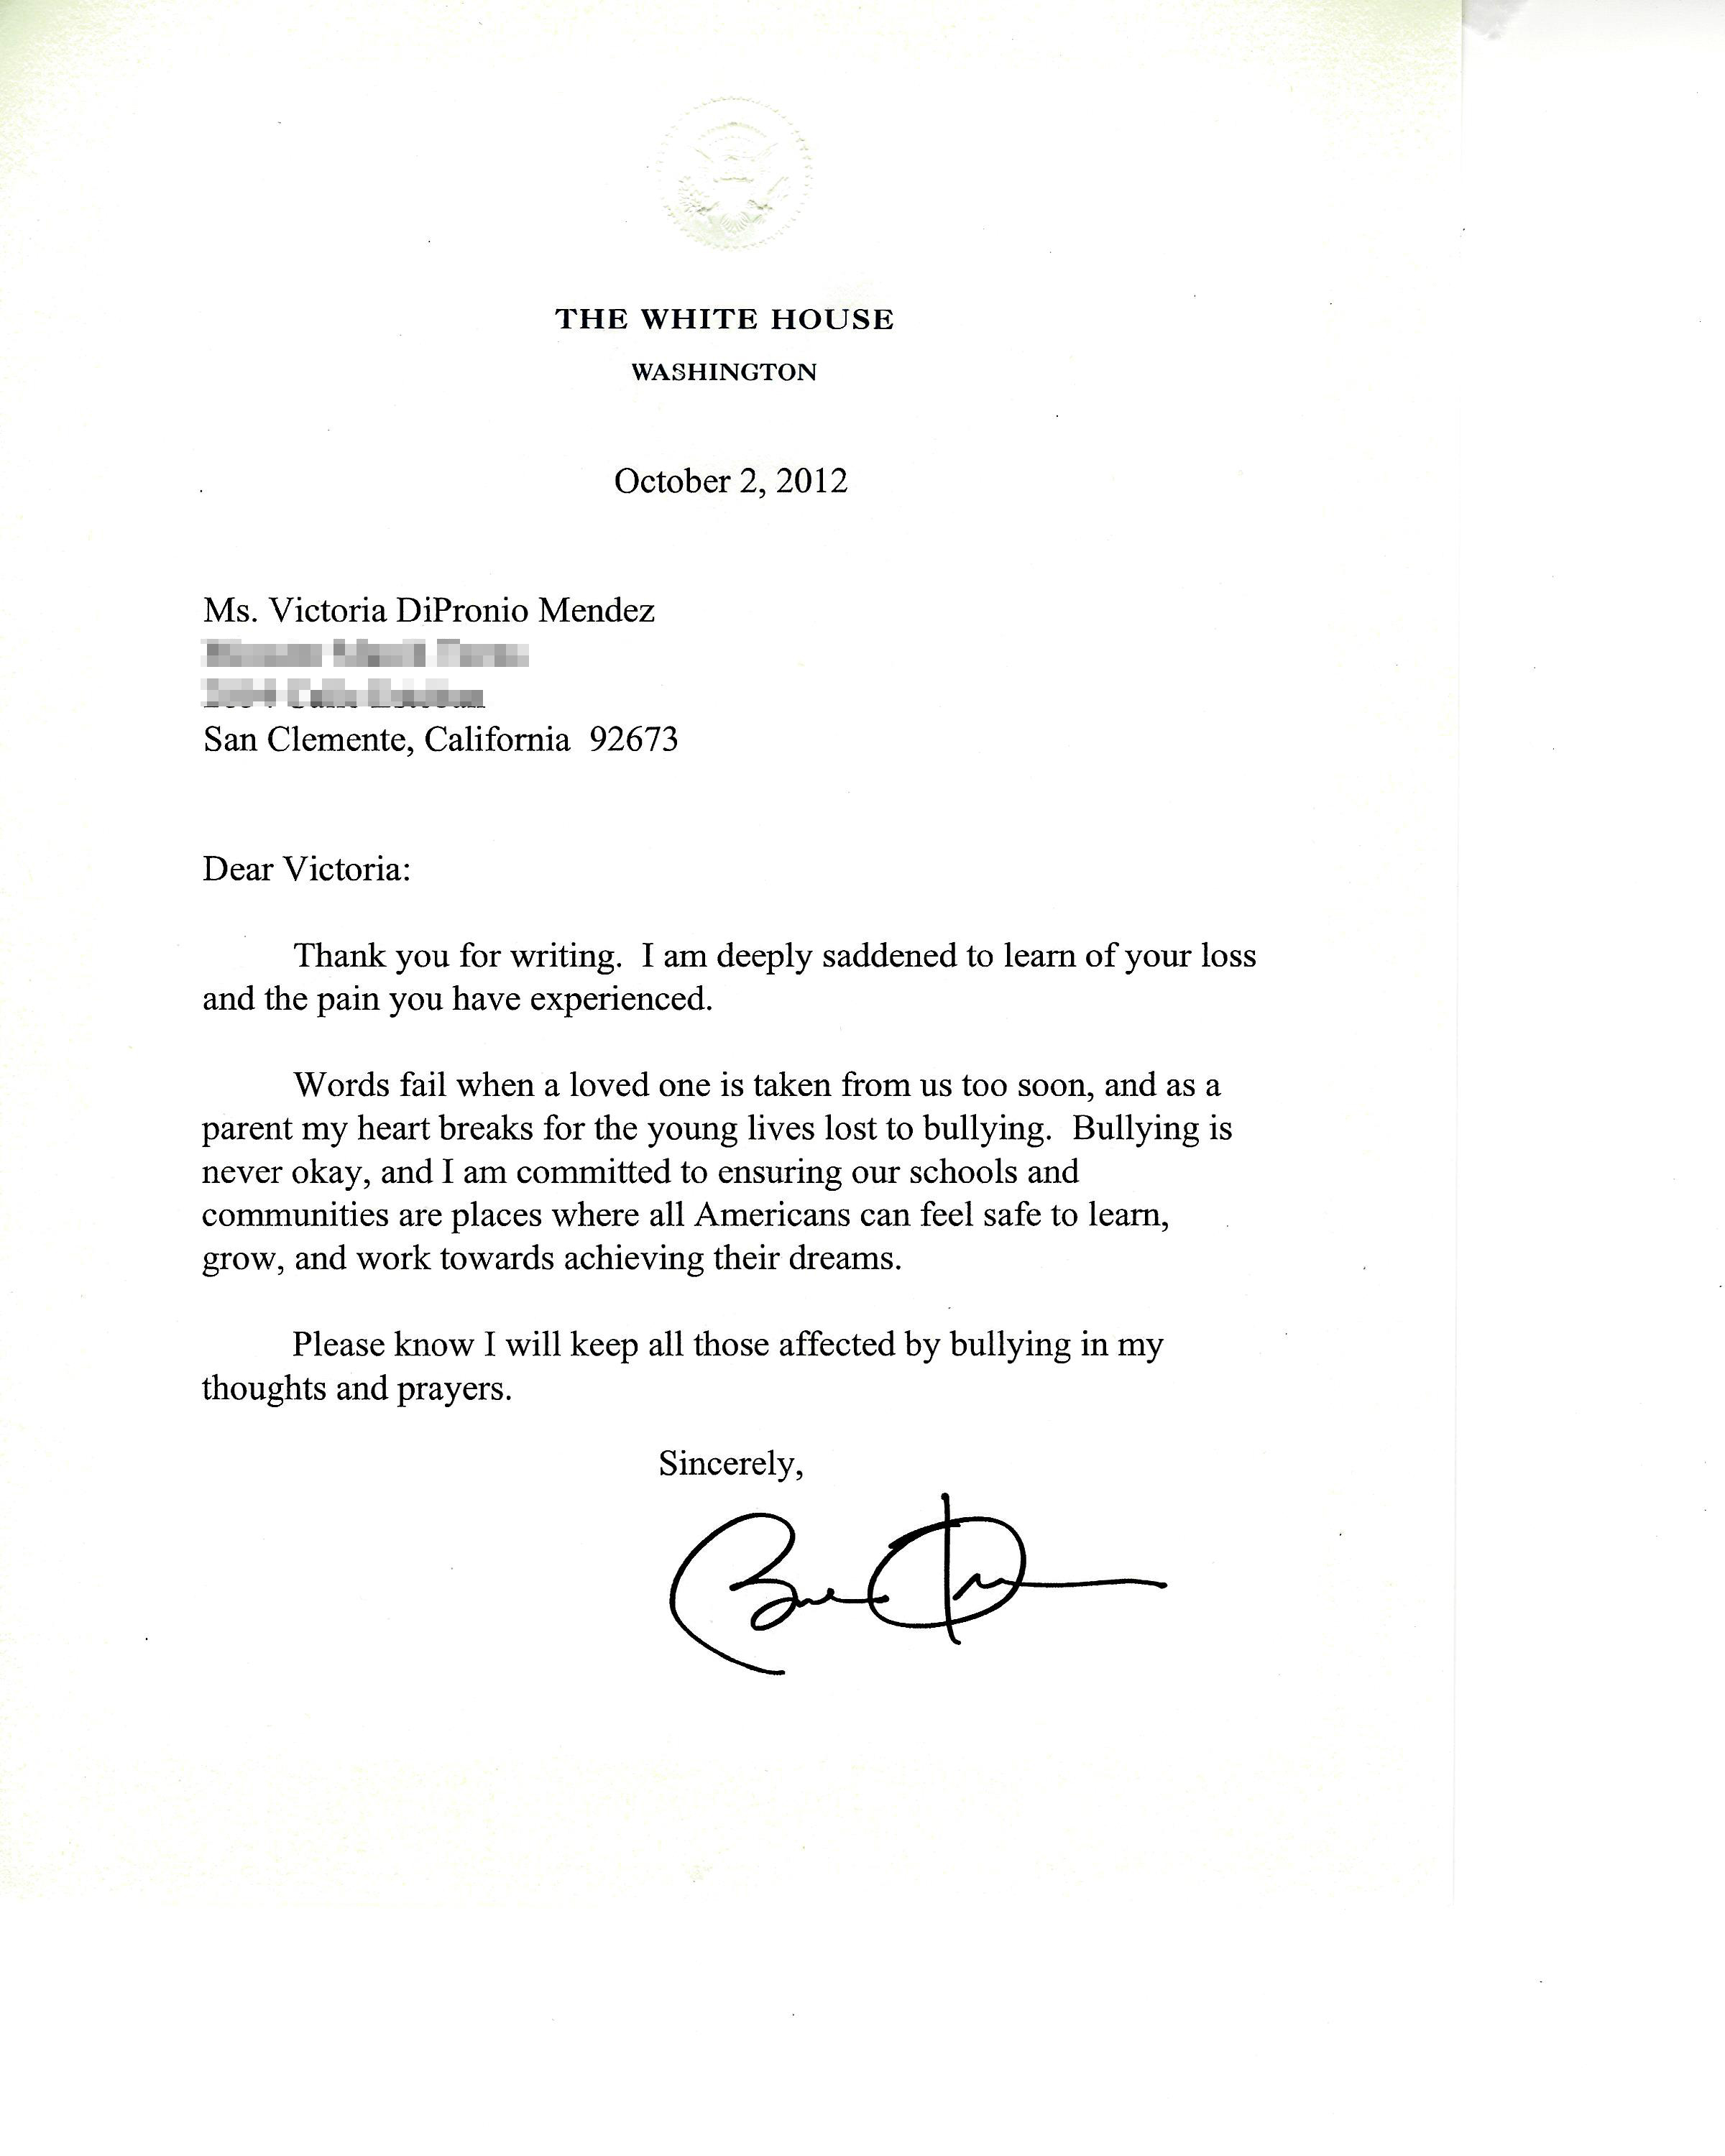 President Obama writes to Victoria Mendez, committing to support of the anti-bullying movement.